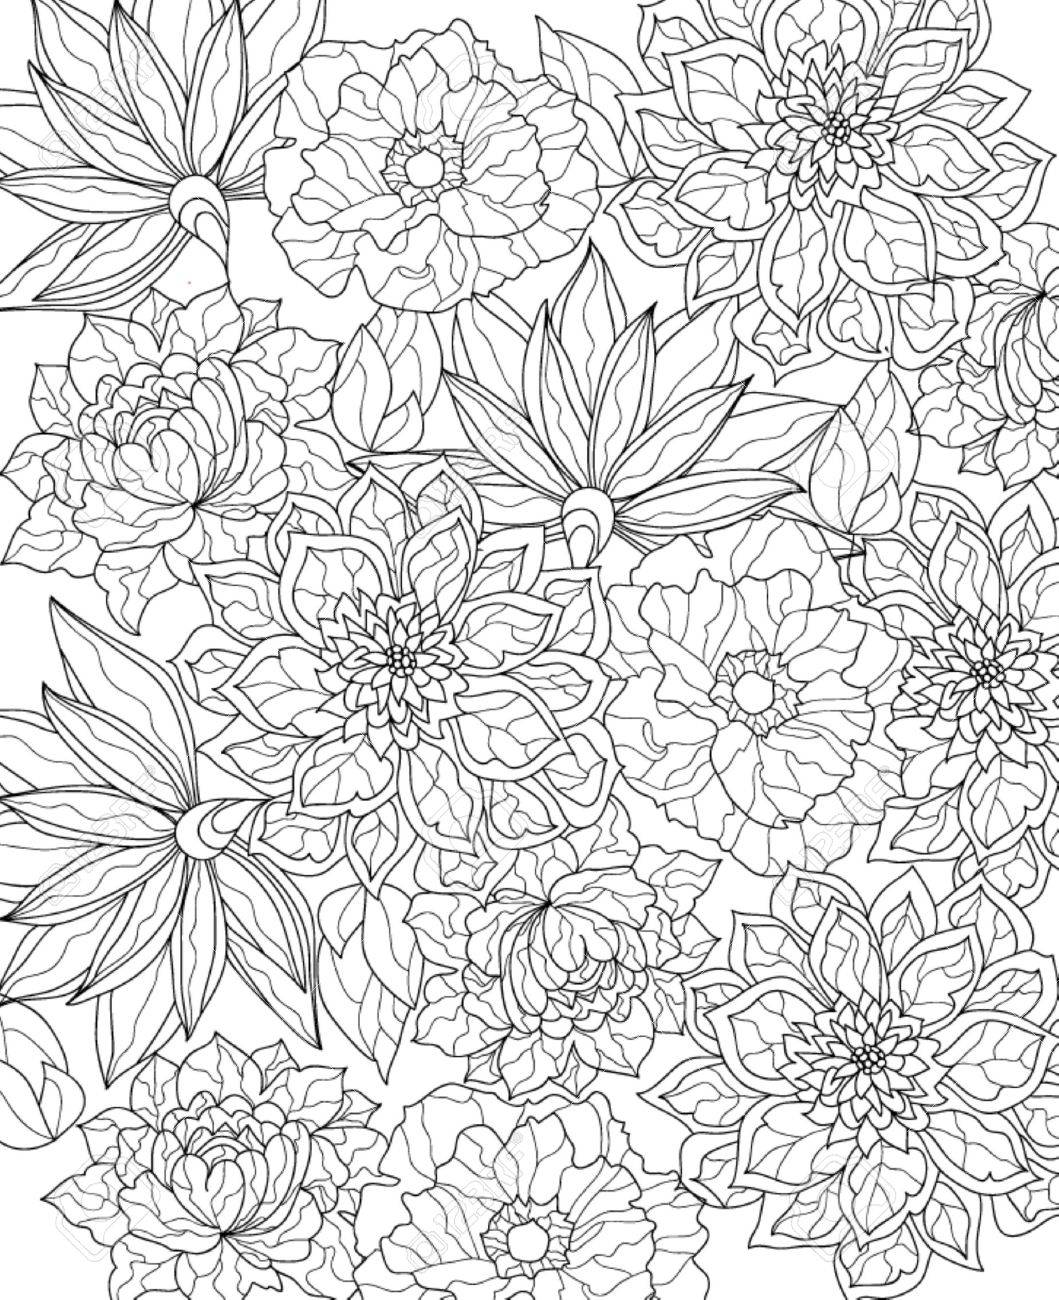 Hand Drawn Coloring Page Royalty Free Cliparts Vectors And Stock